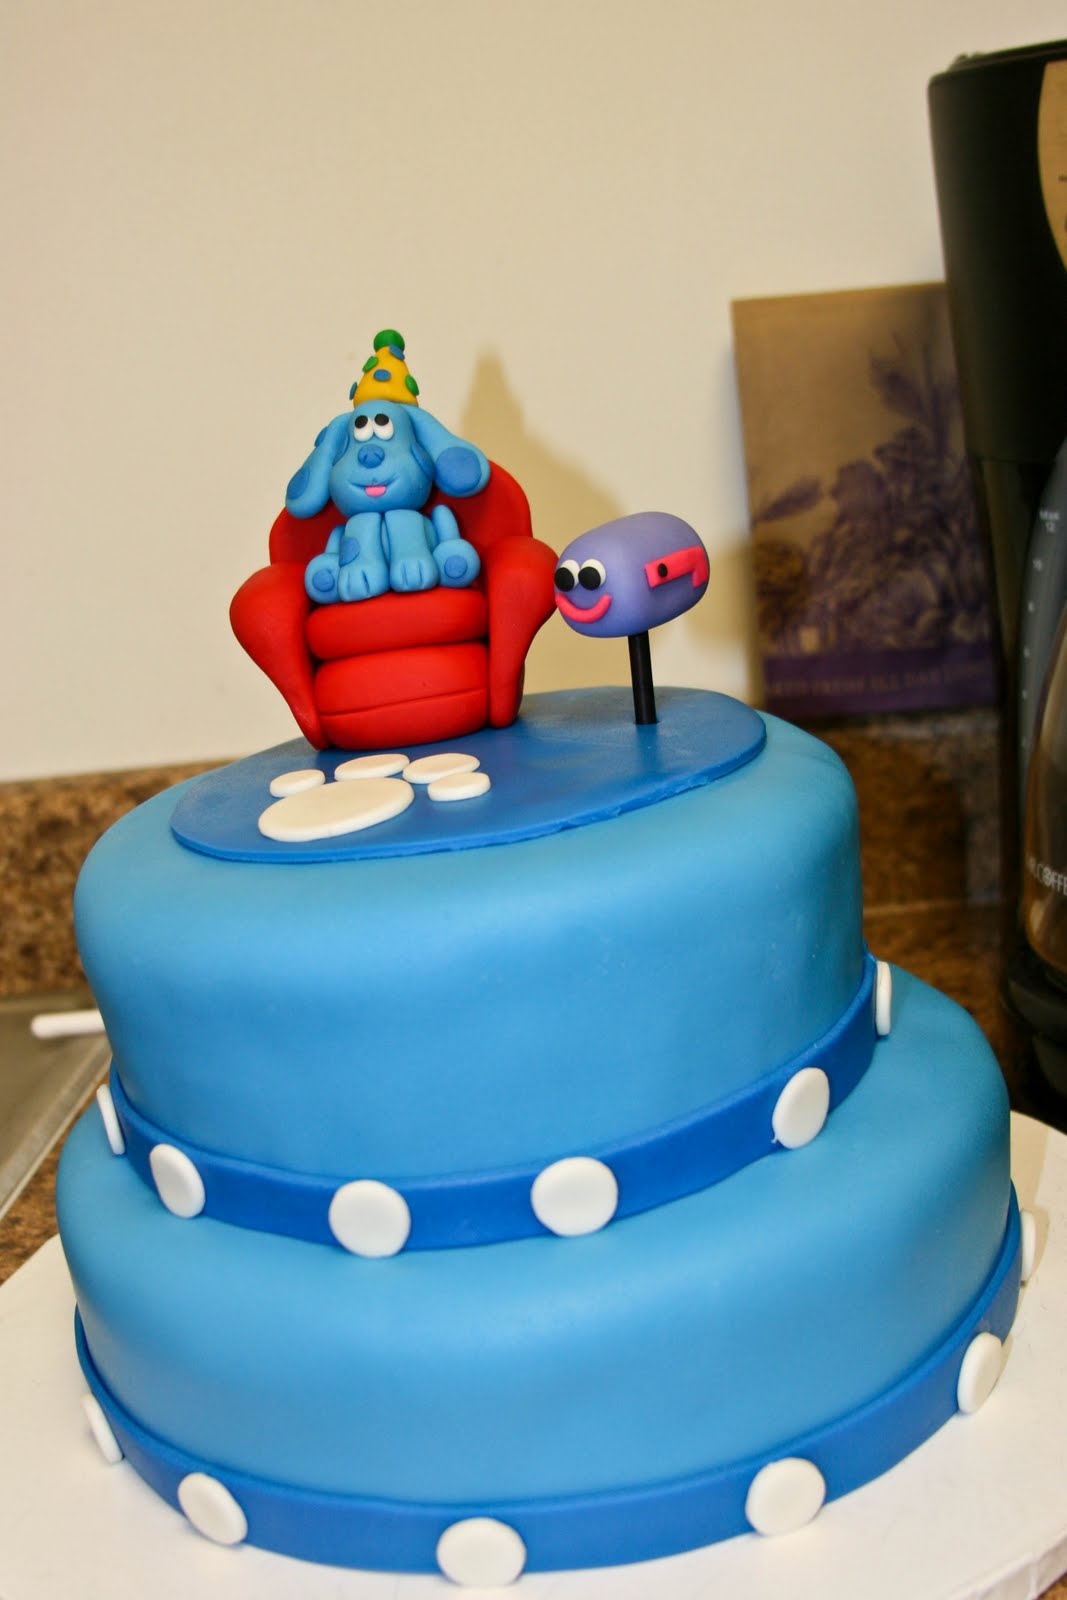 birthday cake blues clues image inspiration of cake and birthday